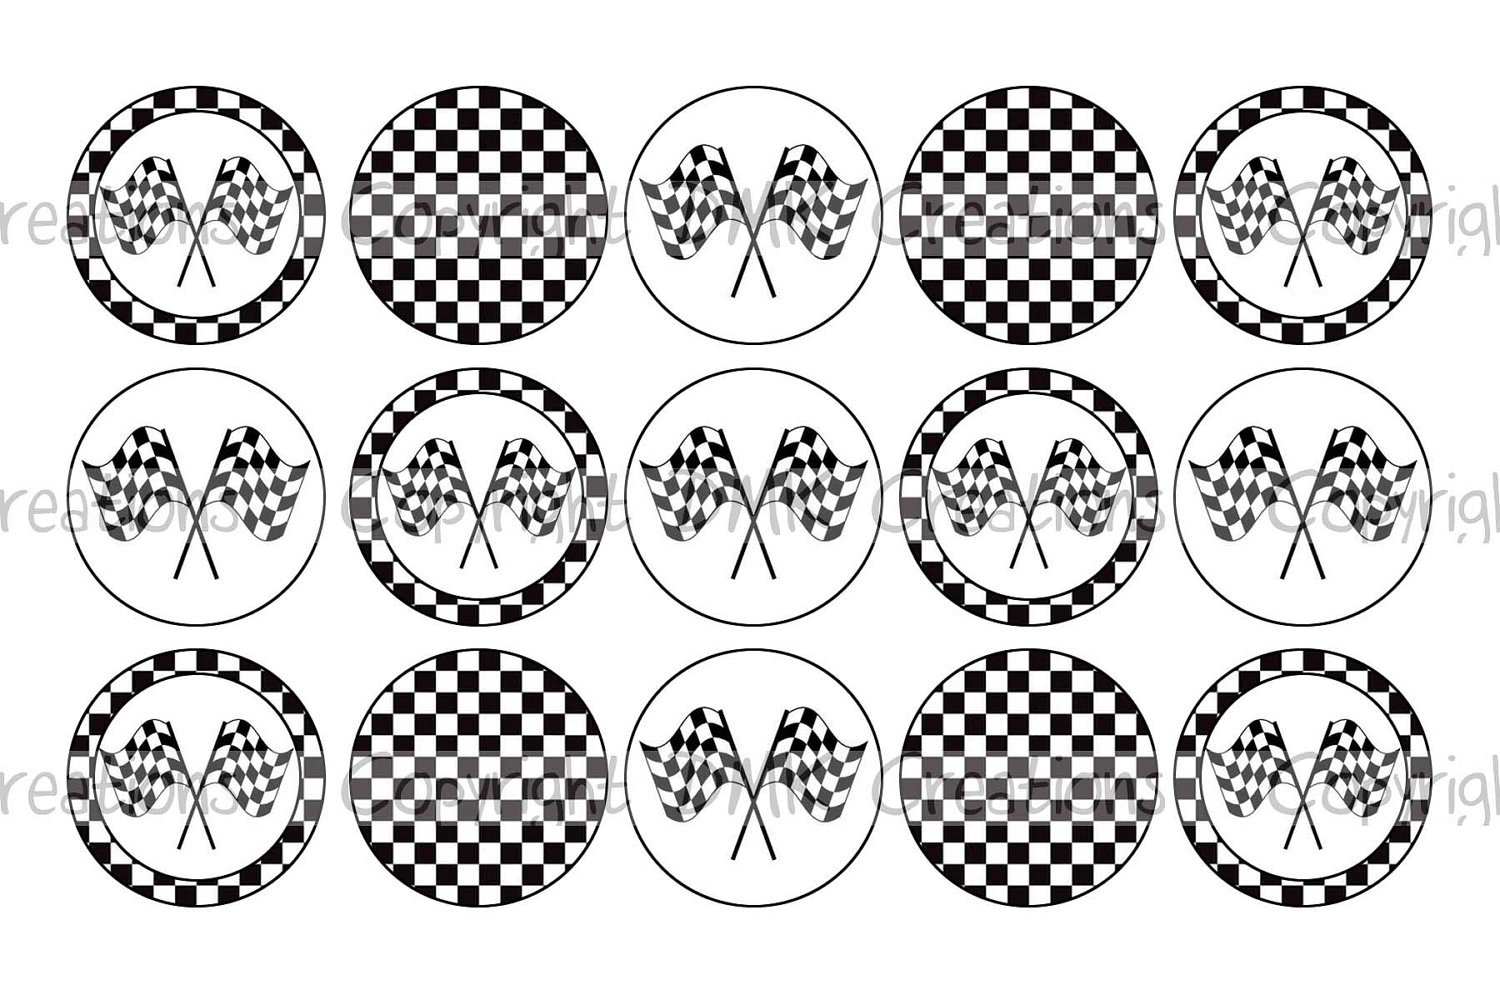 picture regarding Checkered Flag Printable named Checkerboard Template Towards Print. 9 easiest shots of black and